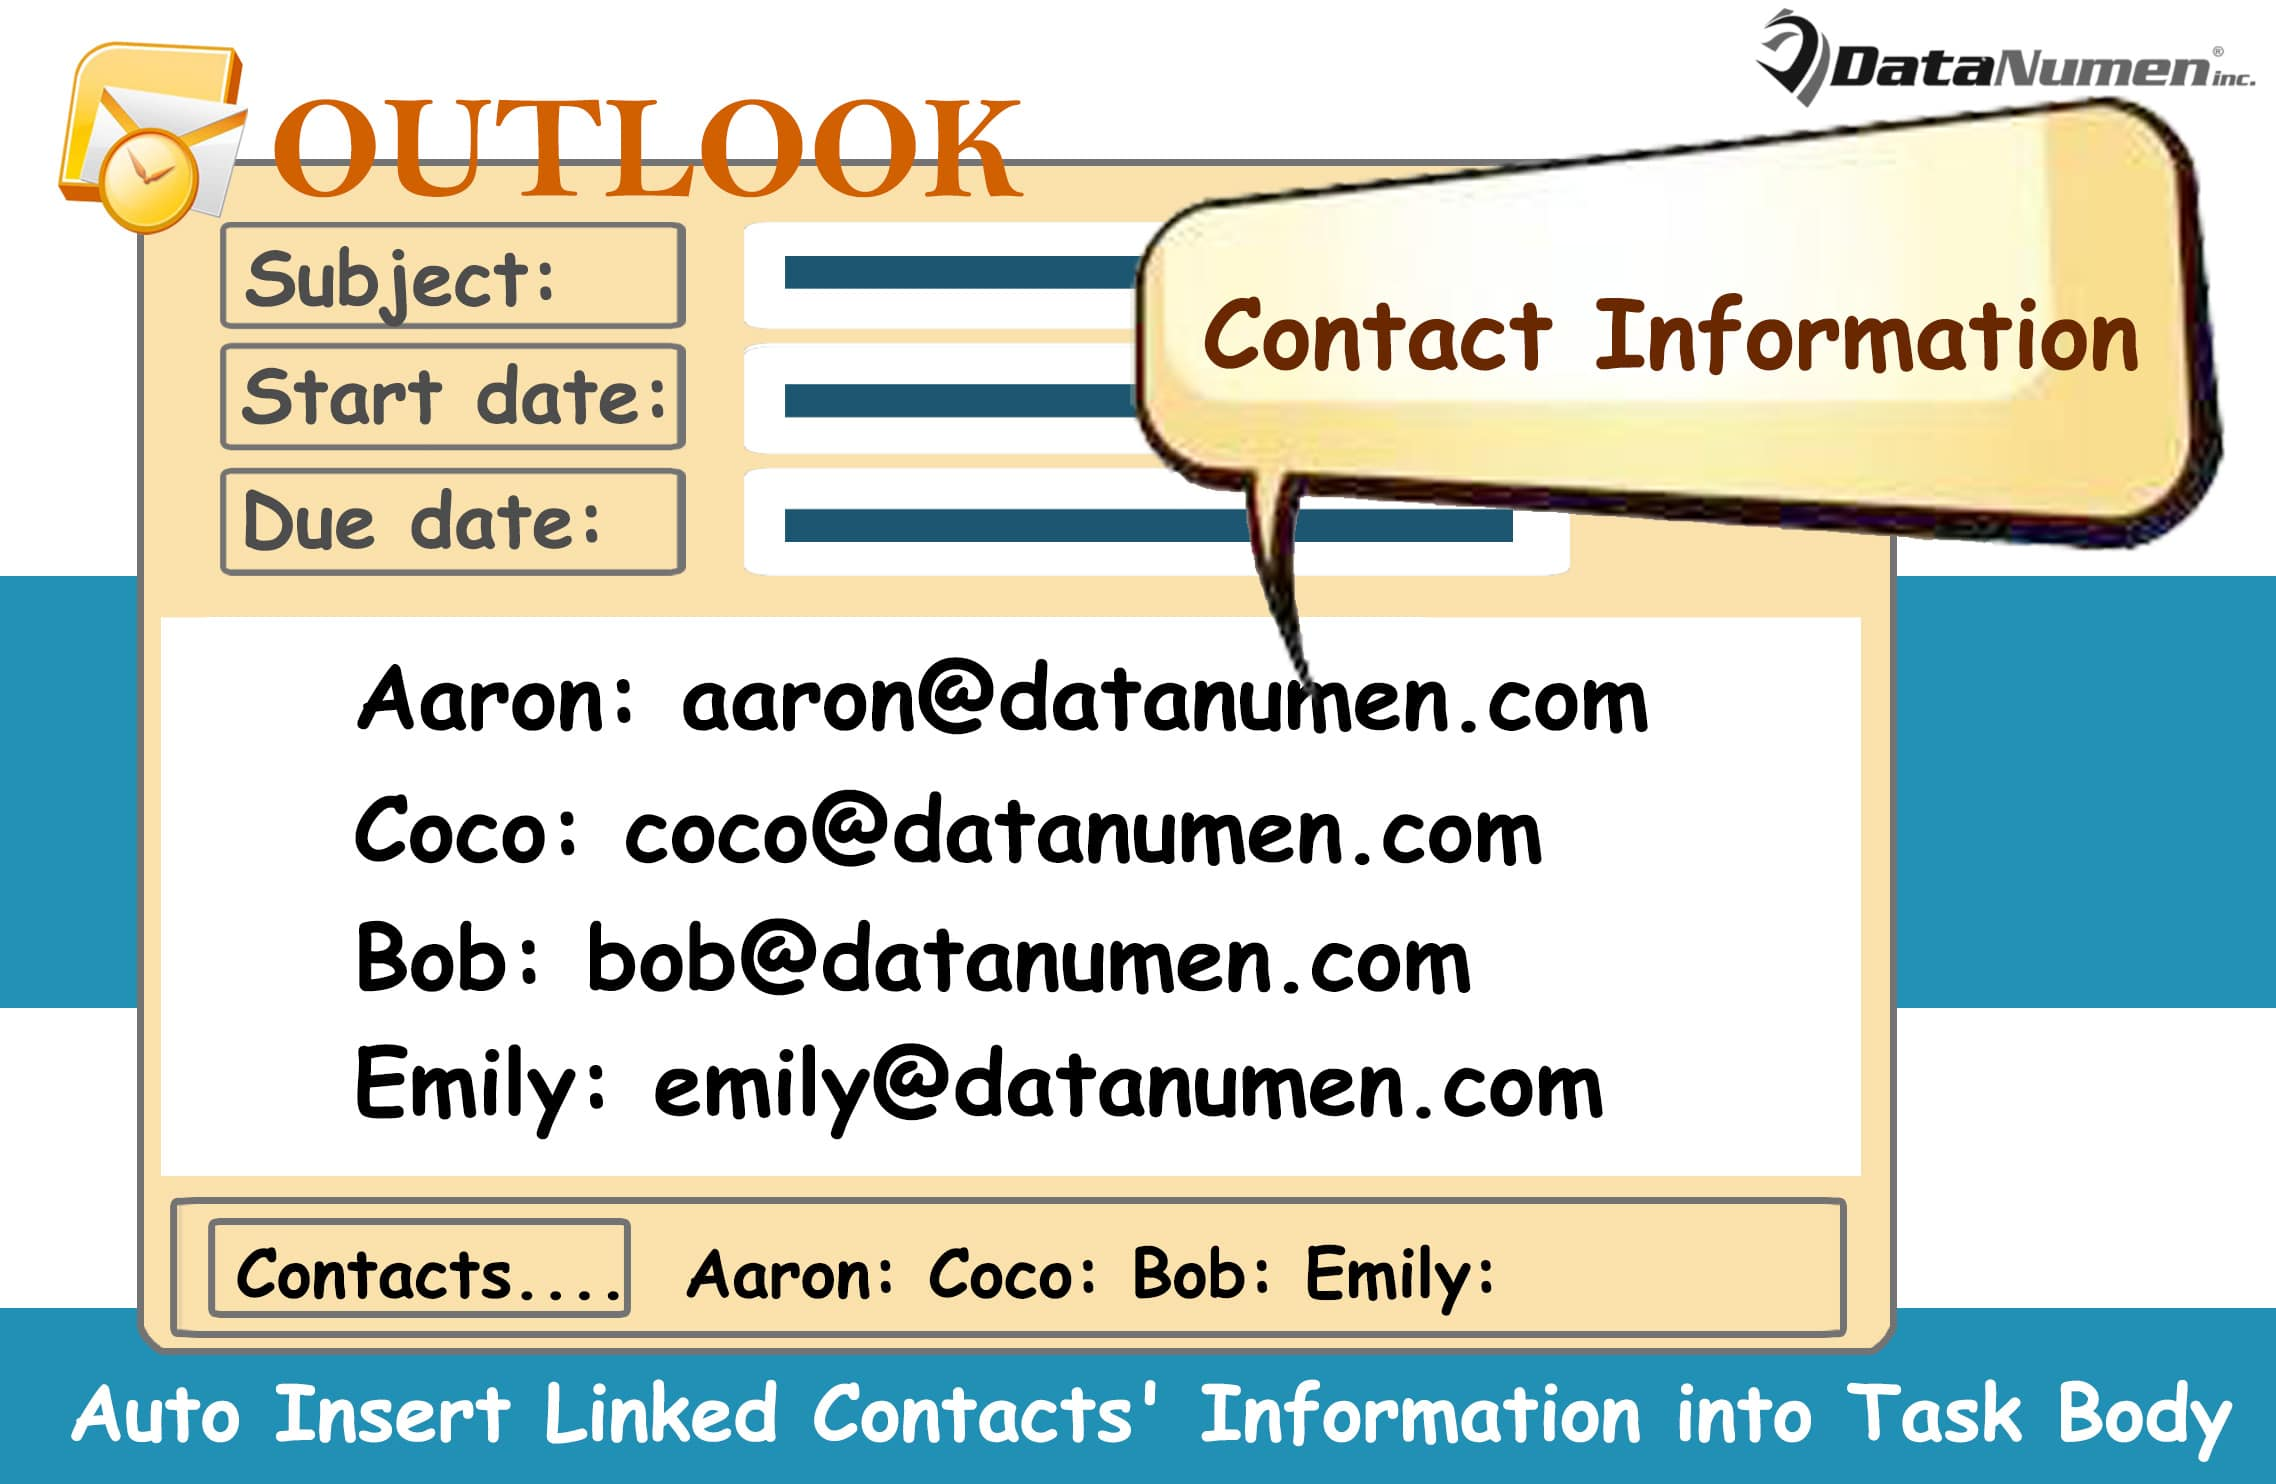 Auto Insert the Linked Contacts' Information into the Body of an Outlook Task